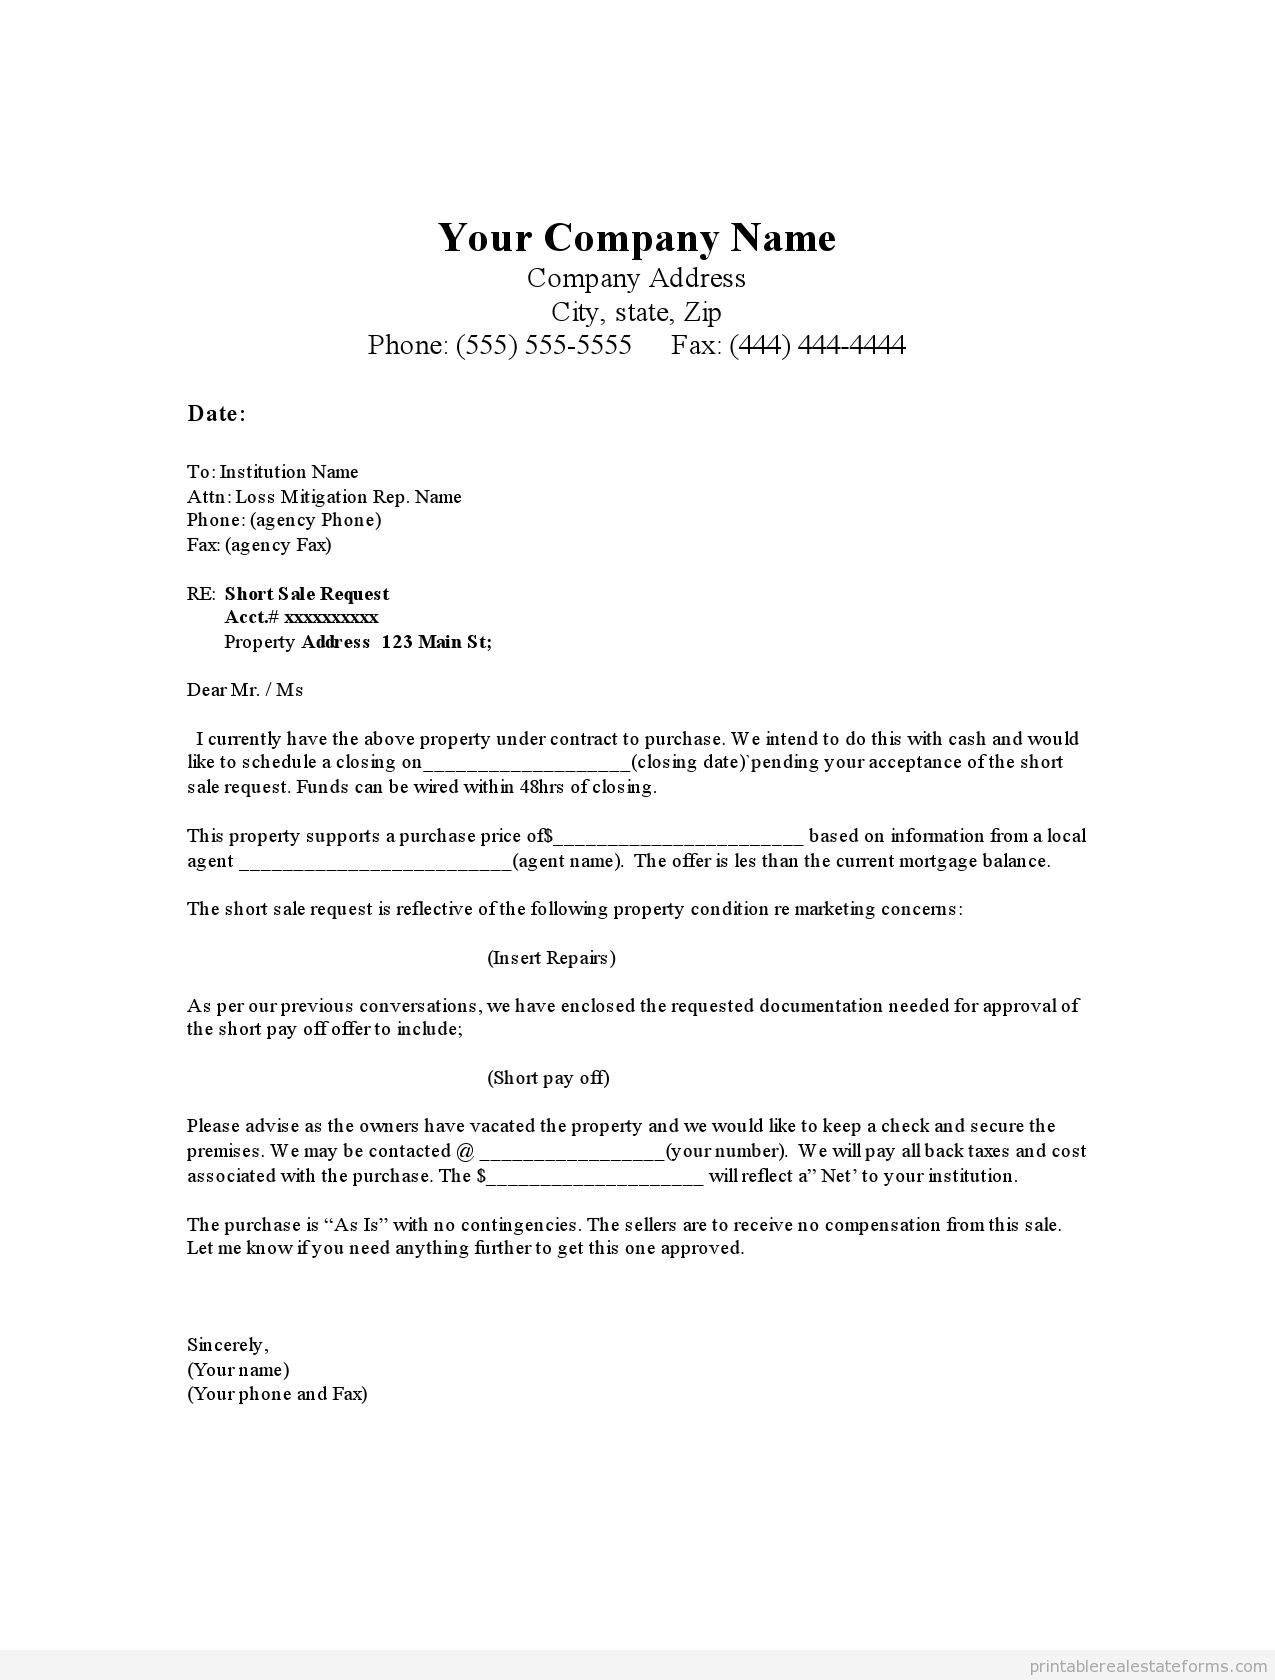 Home Purchase Offer Letter Template Samples | Letter Template